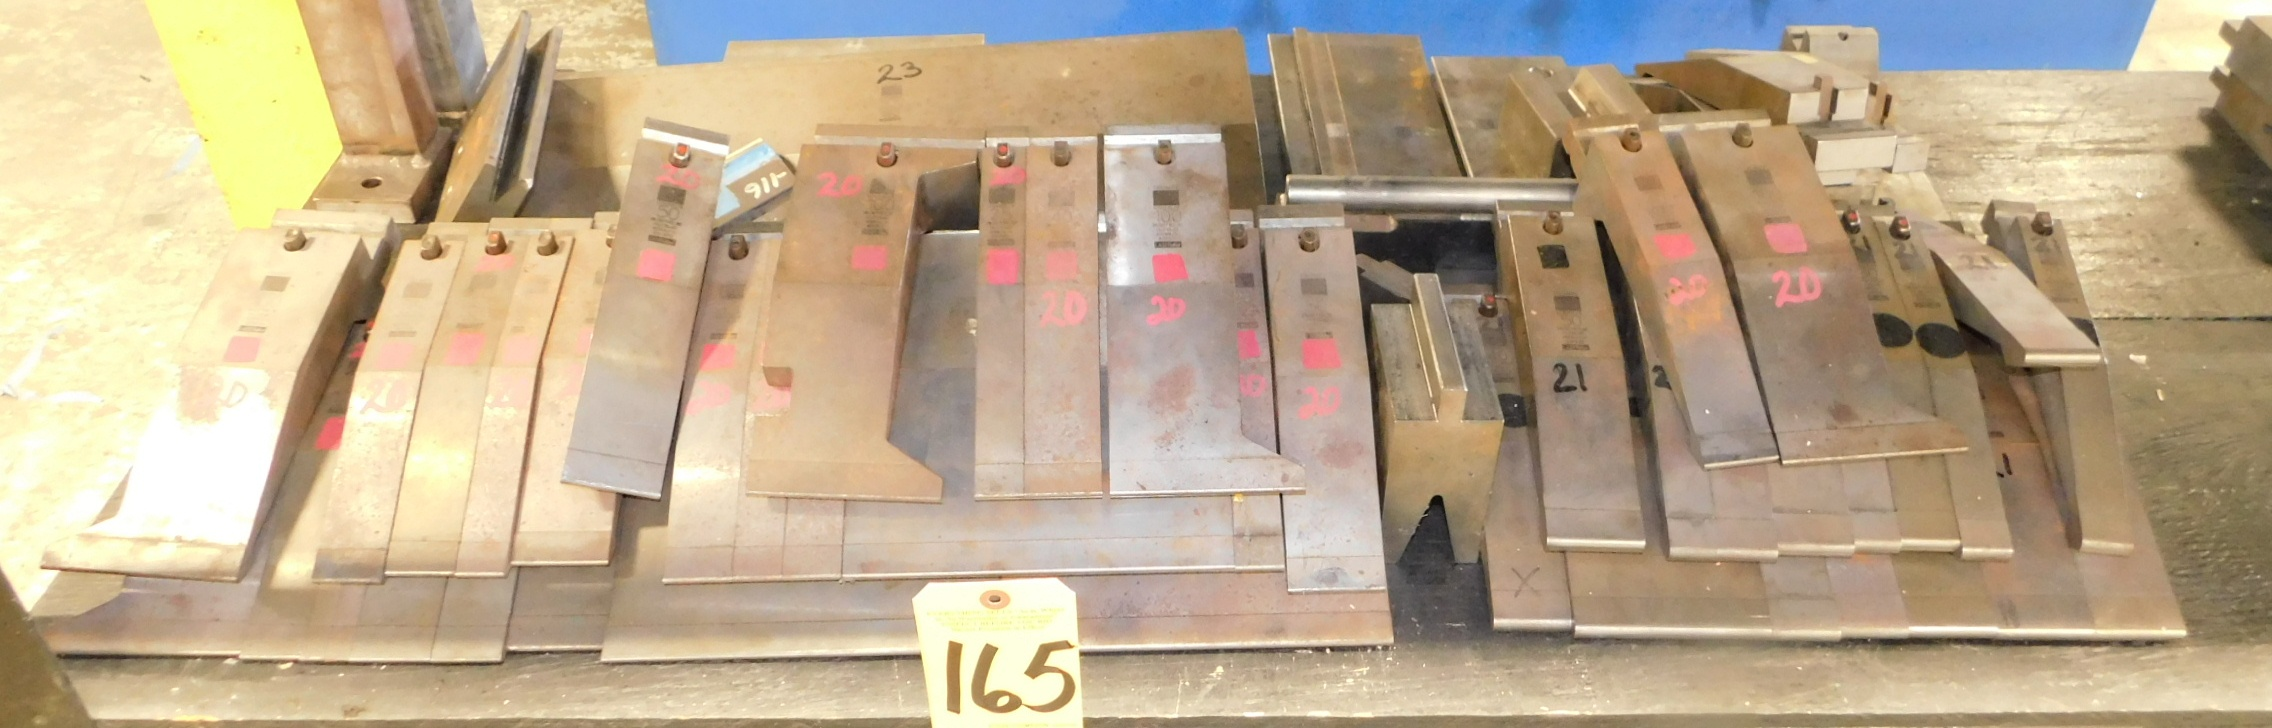 Lot 165 - Trumpf Press Brake Tooling